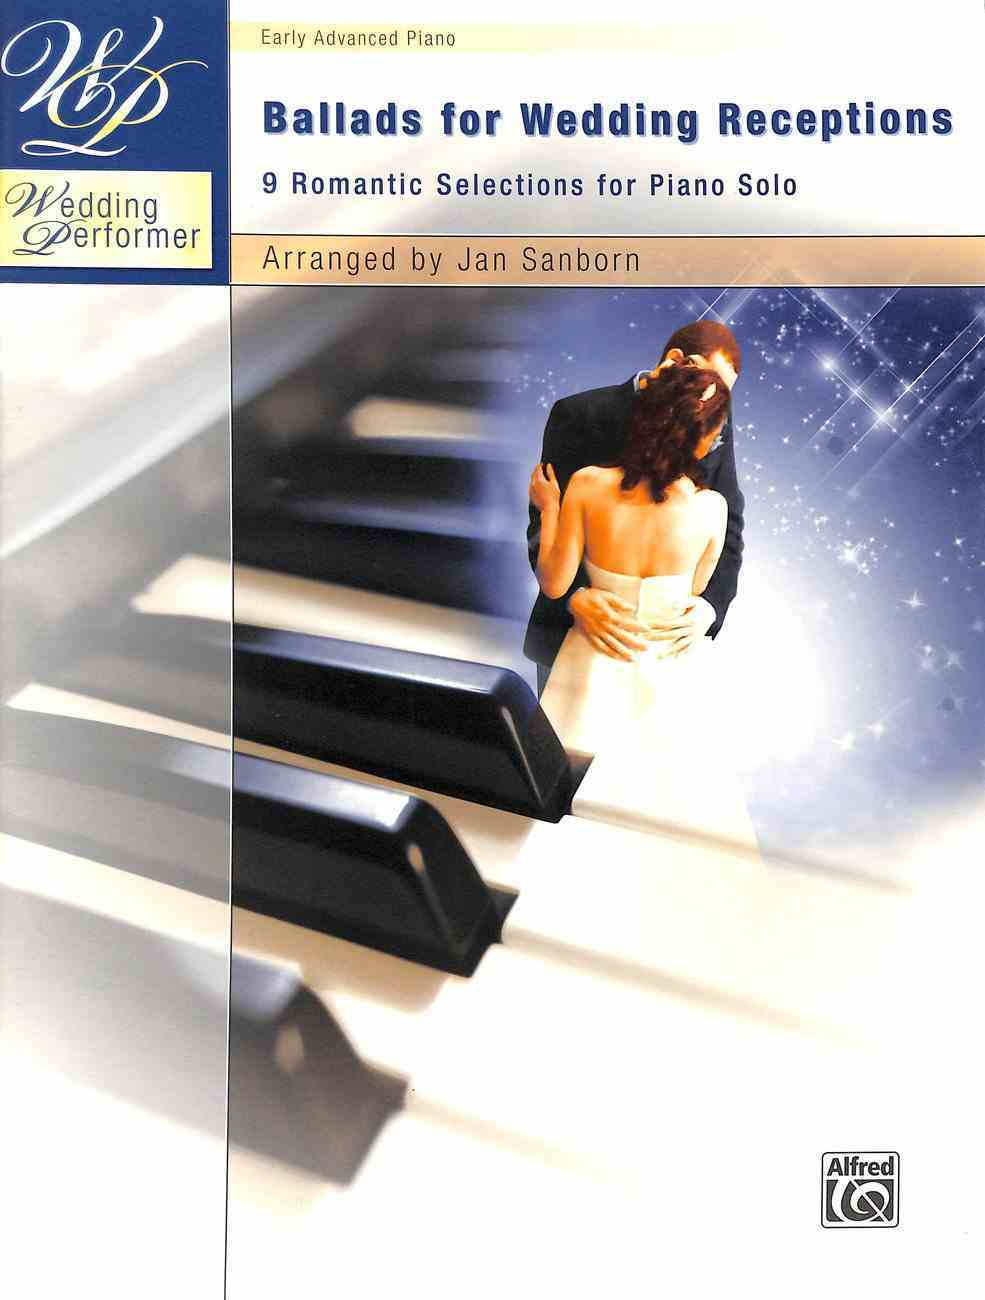 Wedding Performer: Ballads For Wedding Receptions:9 Romantic Selections For Piano Solo (Early Advanced Piano) (Music Book) Paperback